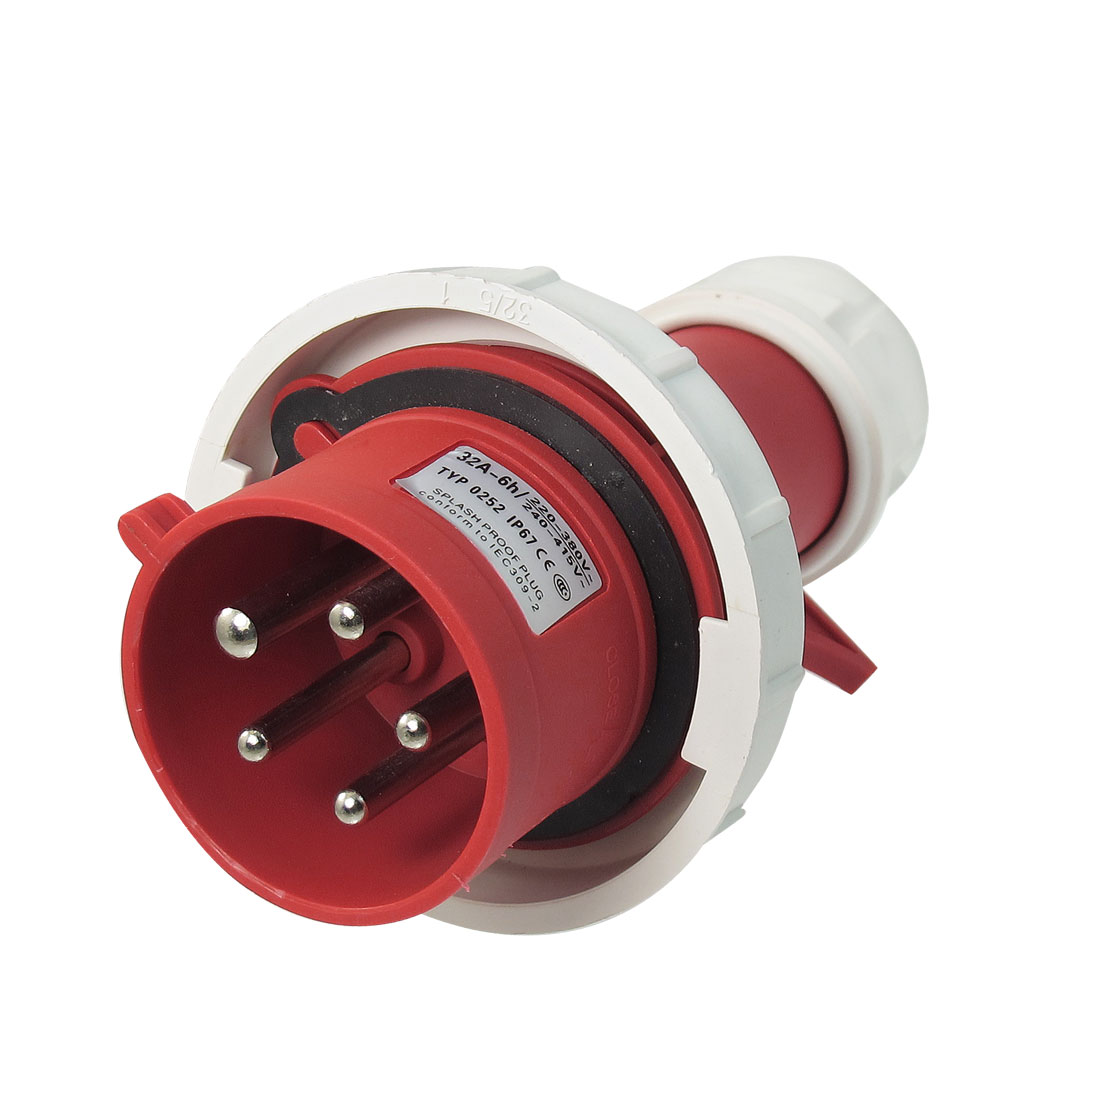 AC 32A Water Proof IP67 3P+E+N IEC309-2 Industrial Conector Red White